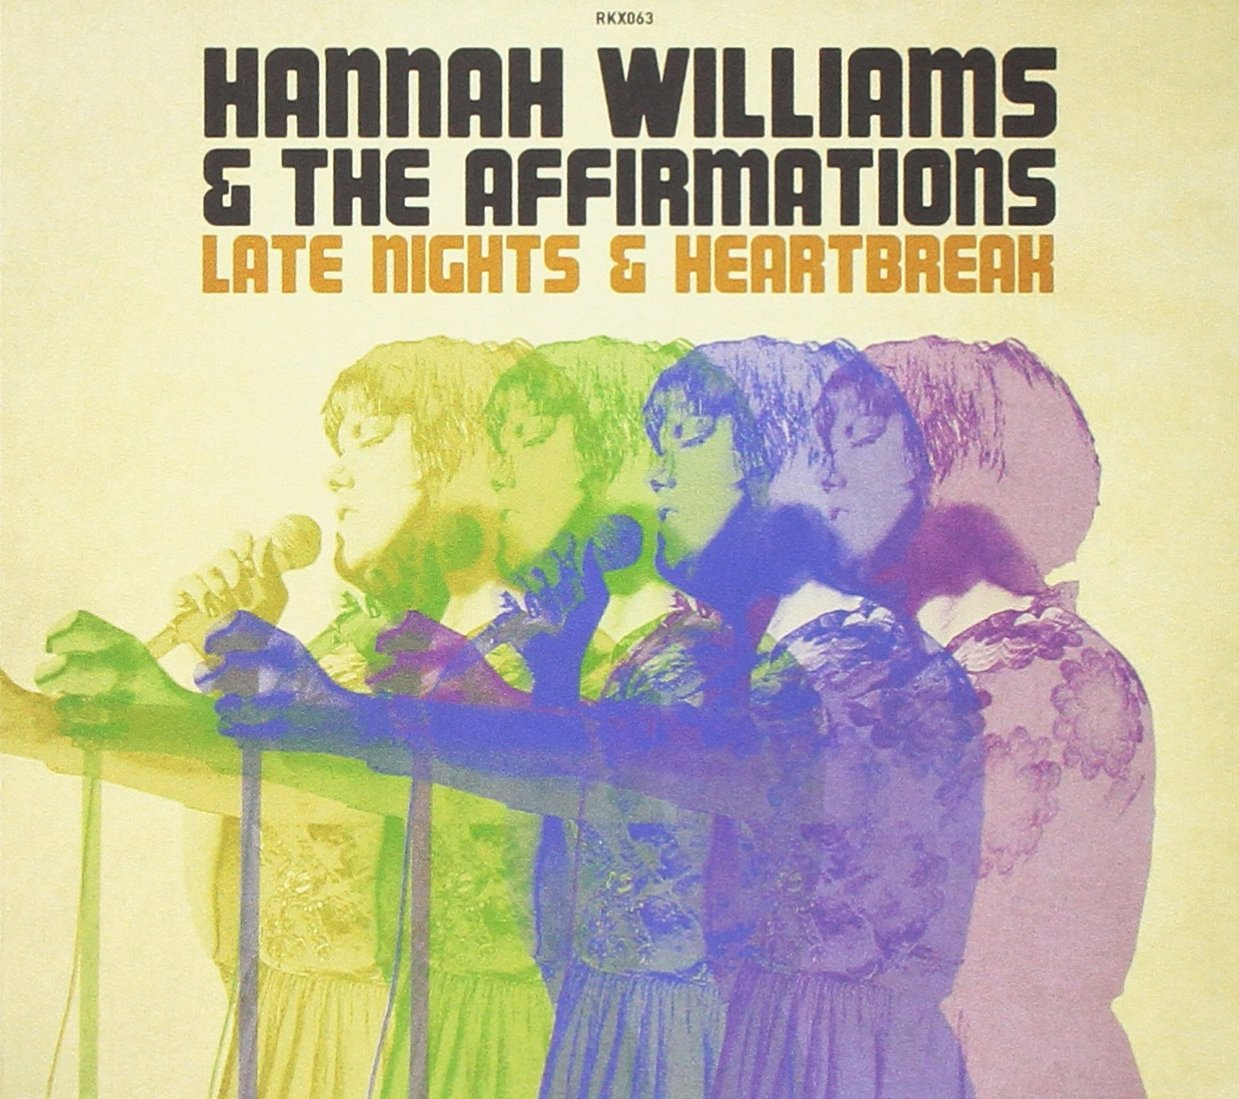 Hannah Williams & The Affirmations – Late Nights & Heartbreak